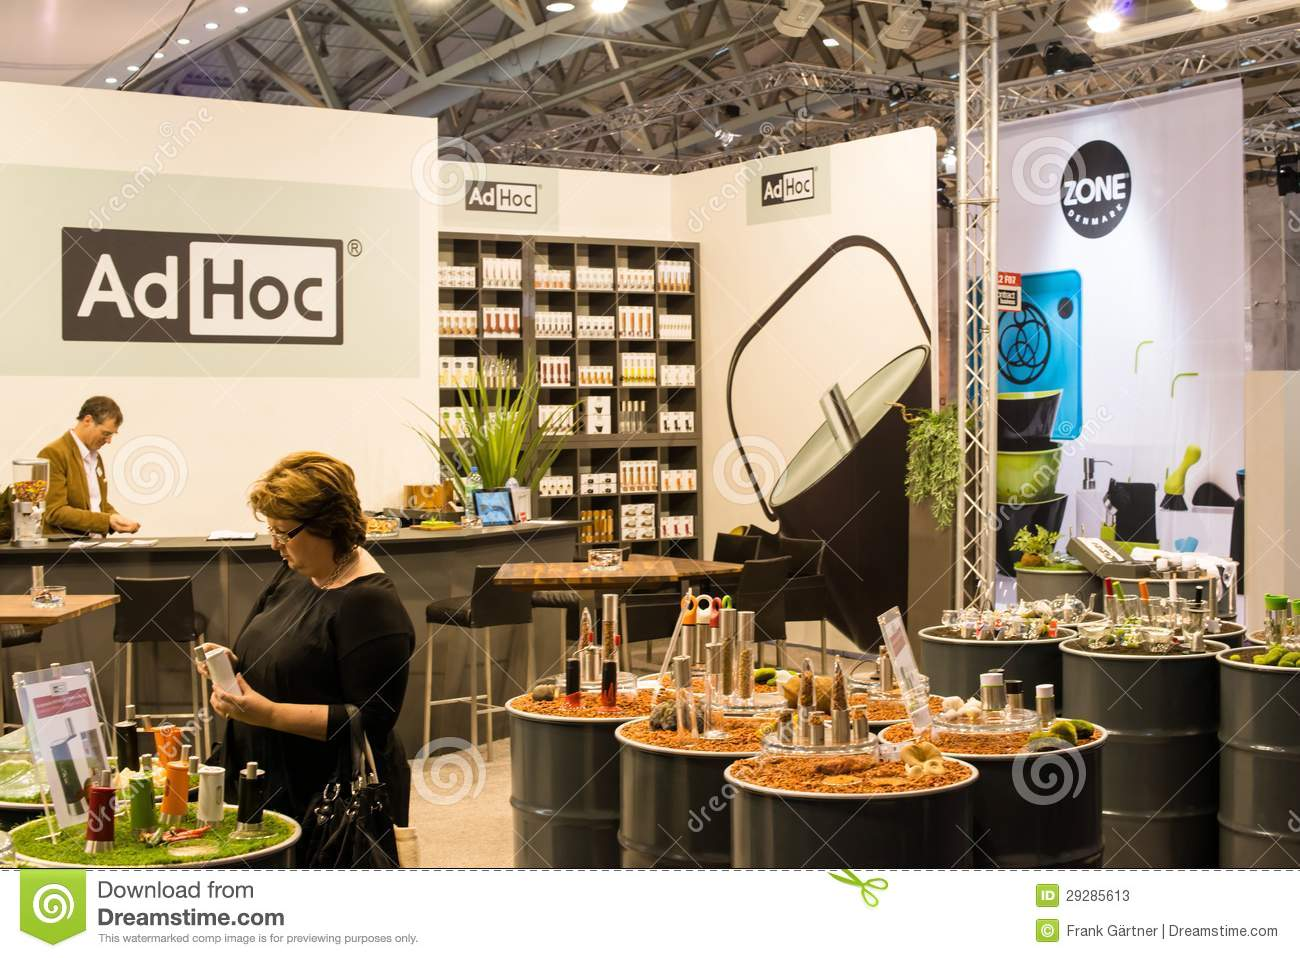 Ad hoc on ambiente exhibition in franfkurt editorial stock - Ad hoc interiorismo ...